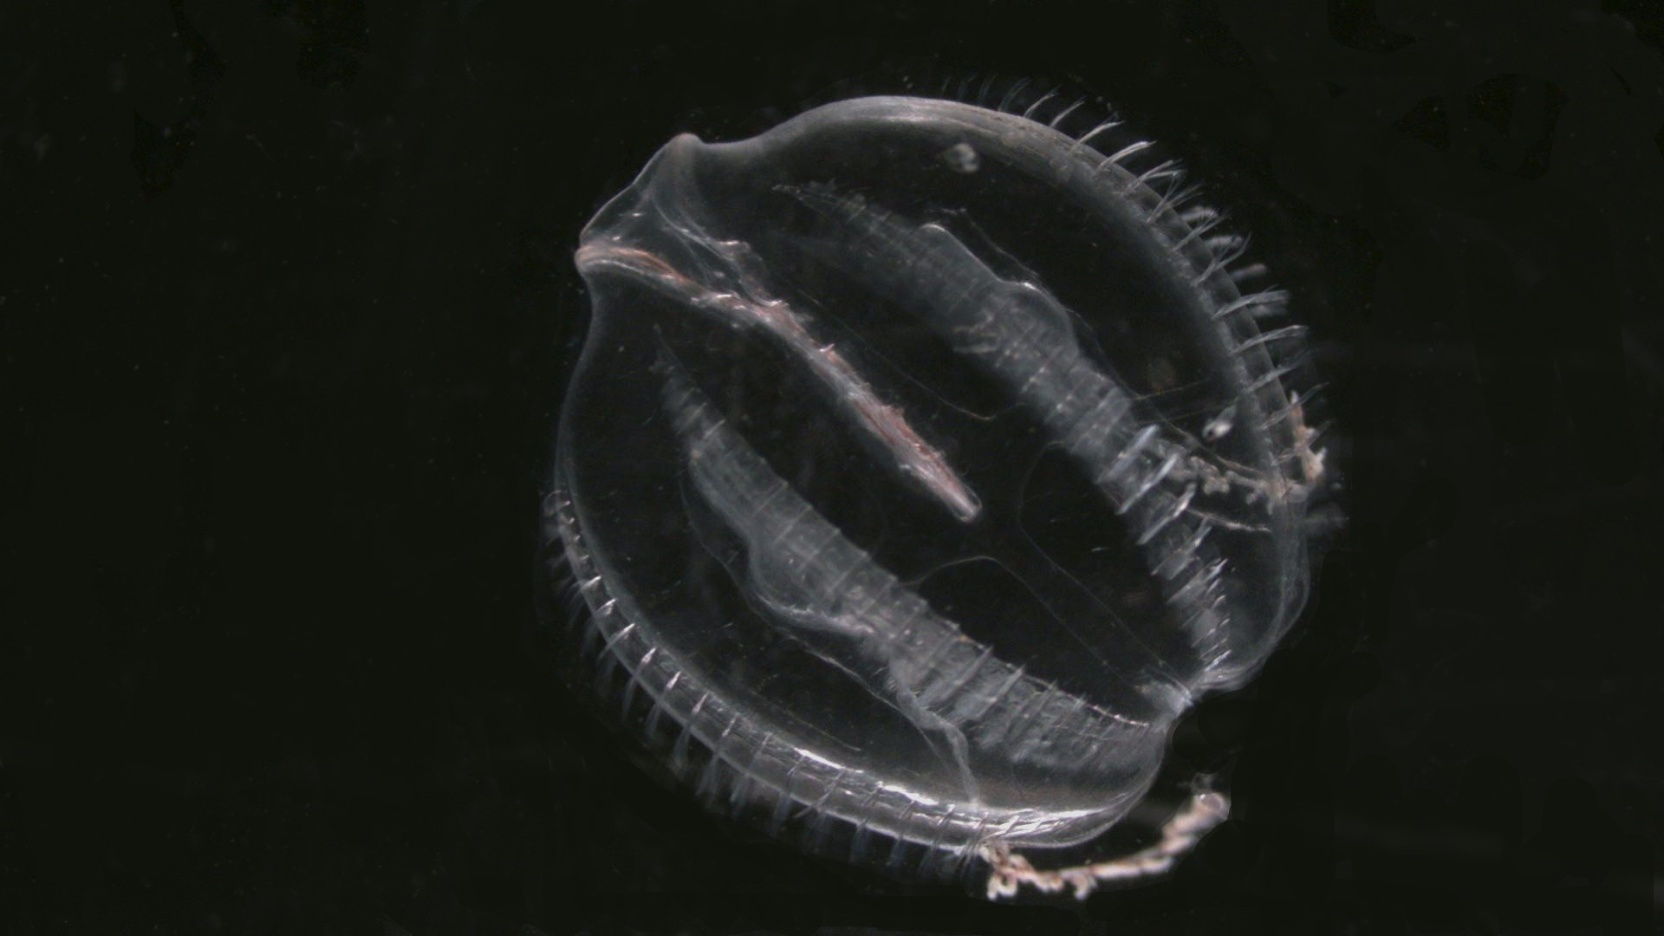 An adult ctenophore, Pleurobrachia pileus, against a black background. The characteristic combs or ctenes are visible in the image